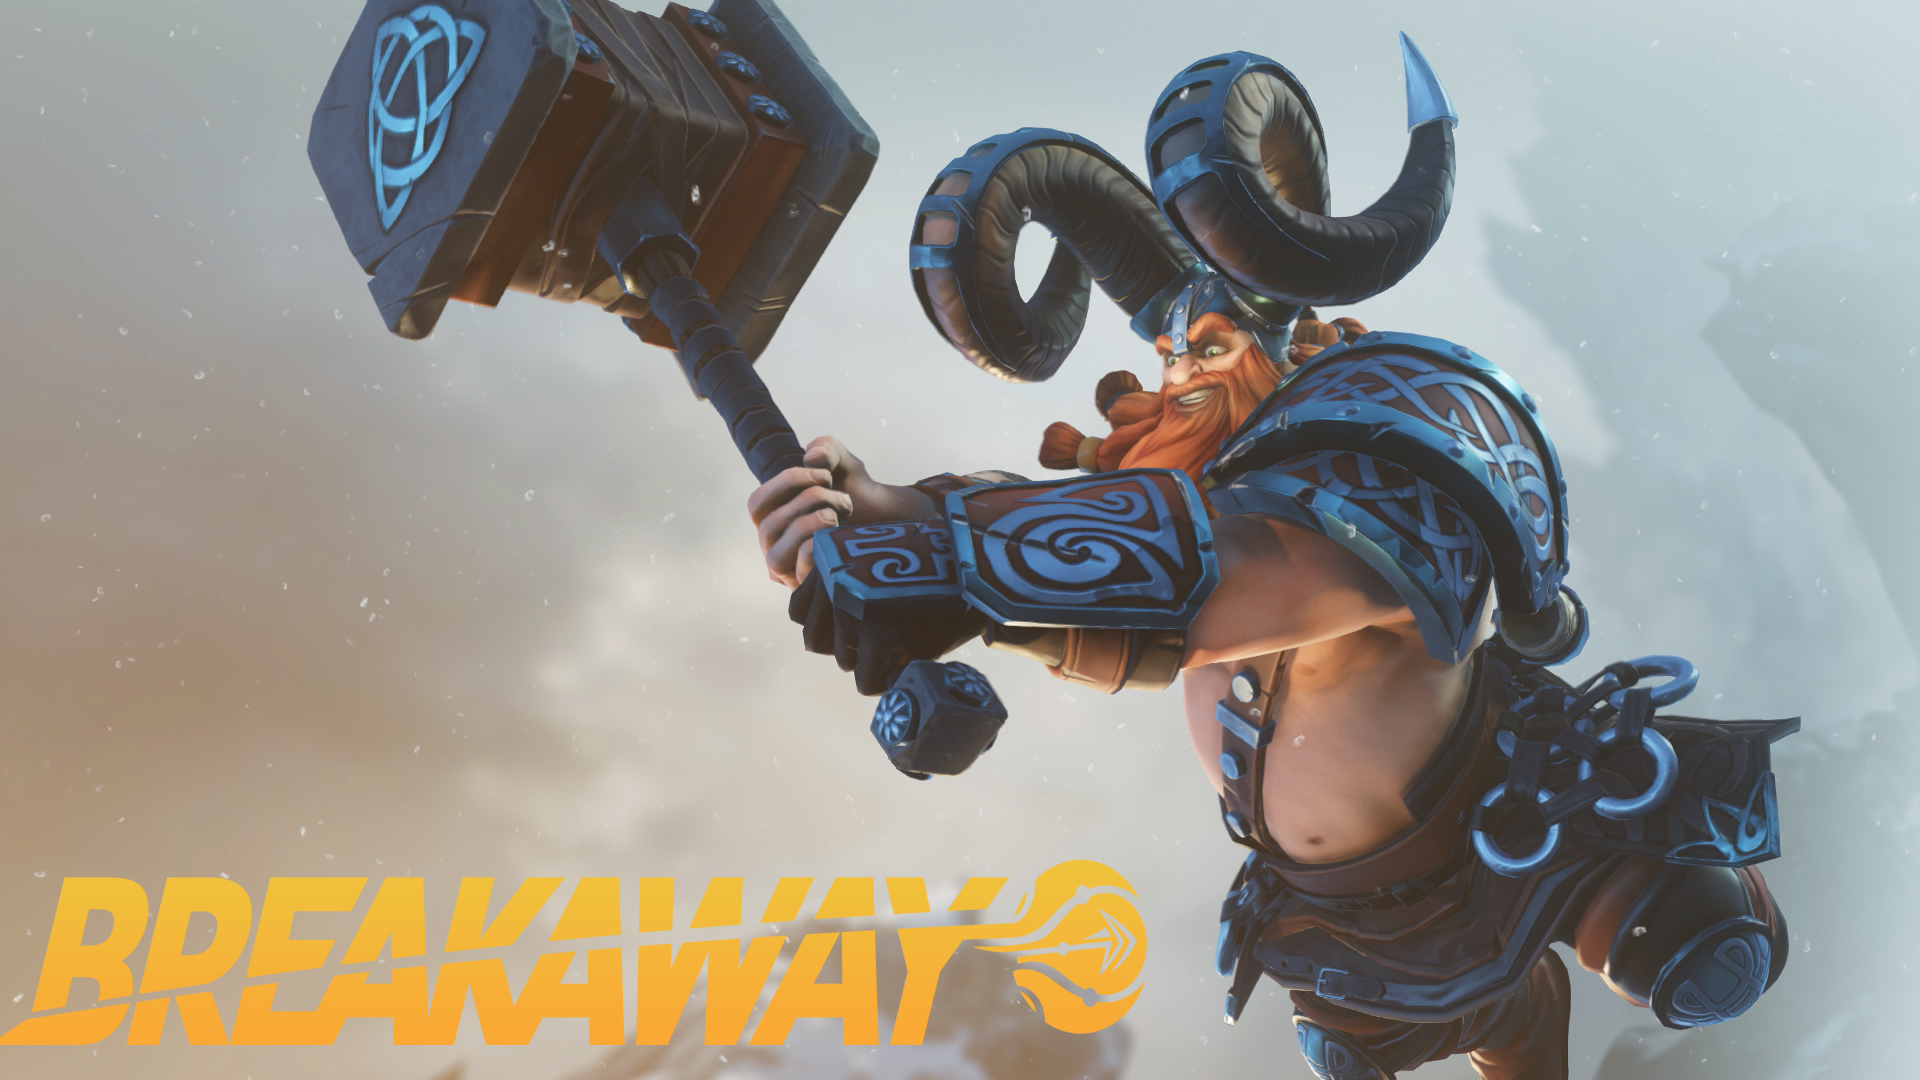 Breakaway preview: Hands-on with Amazon's play into eSports